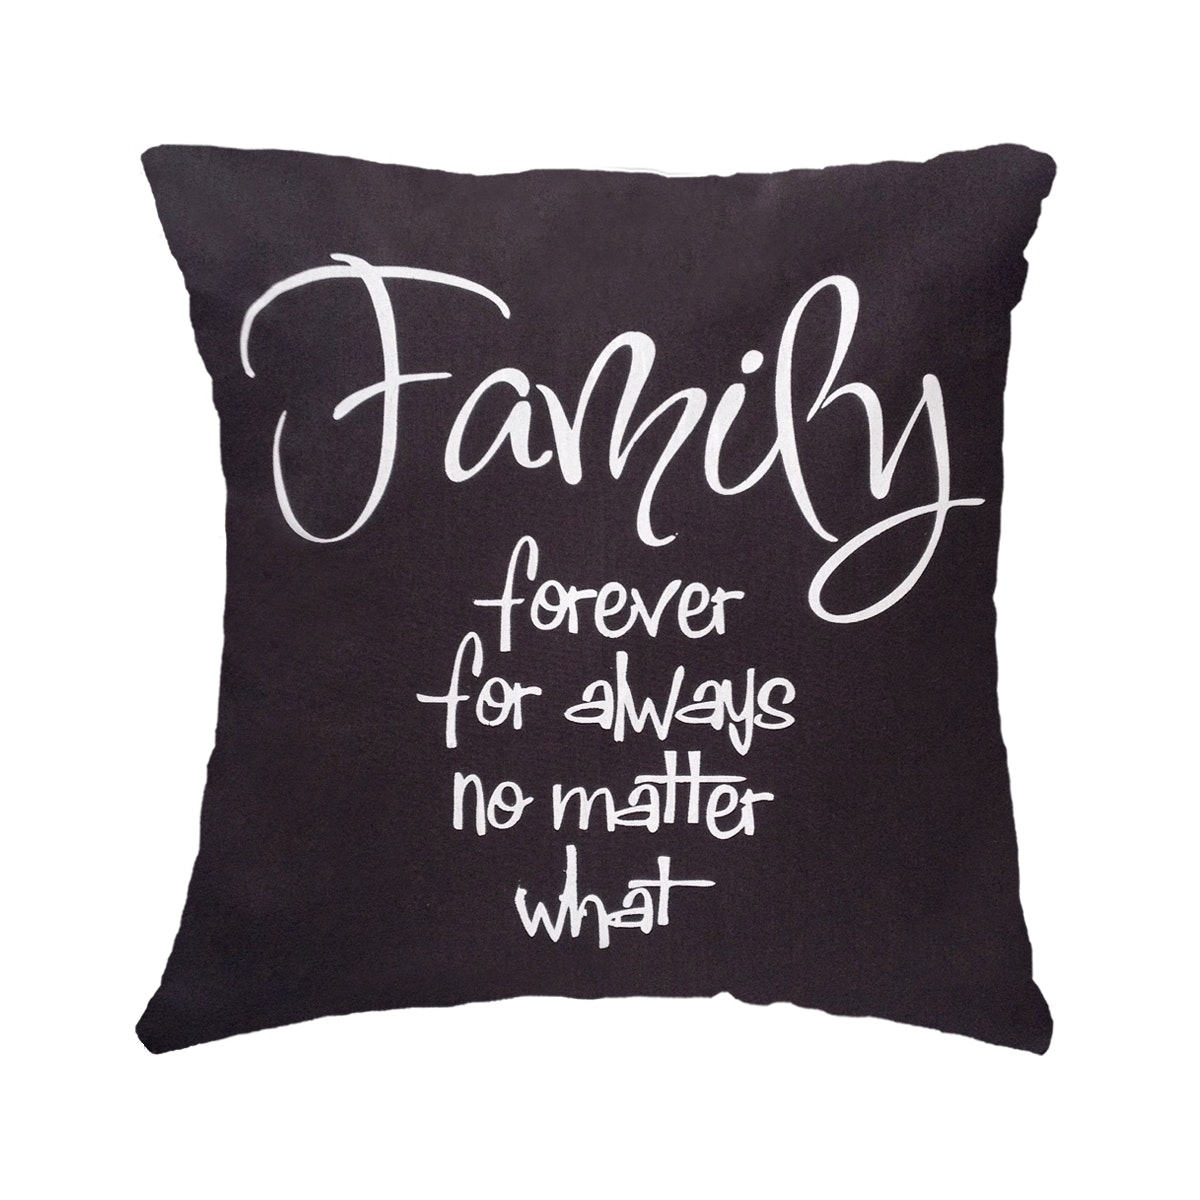 Stiletto In Style Cushion Cover Family Forever 40 X 40Cm